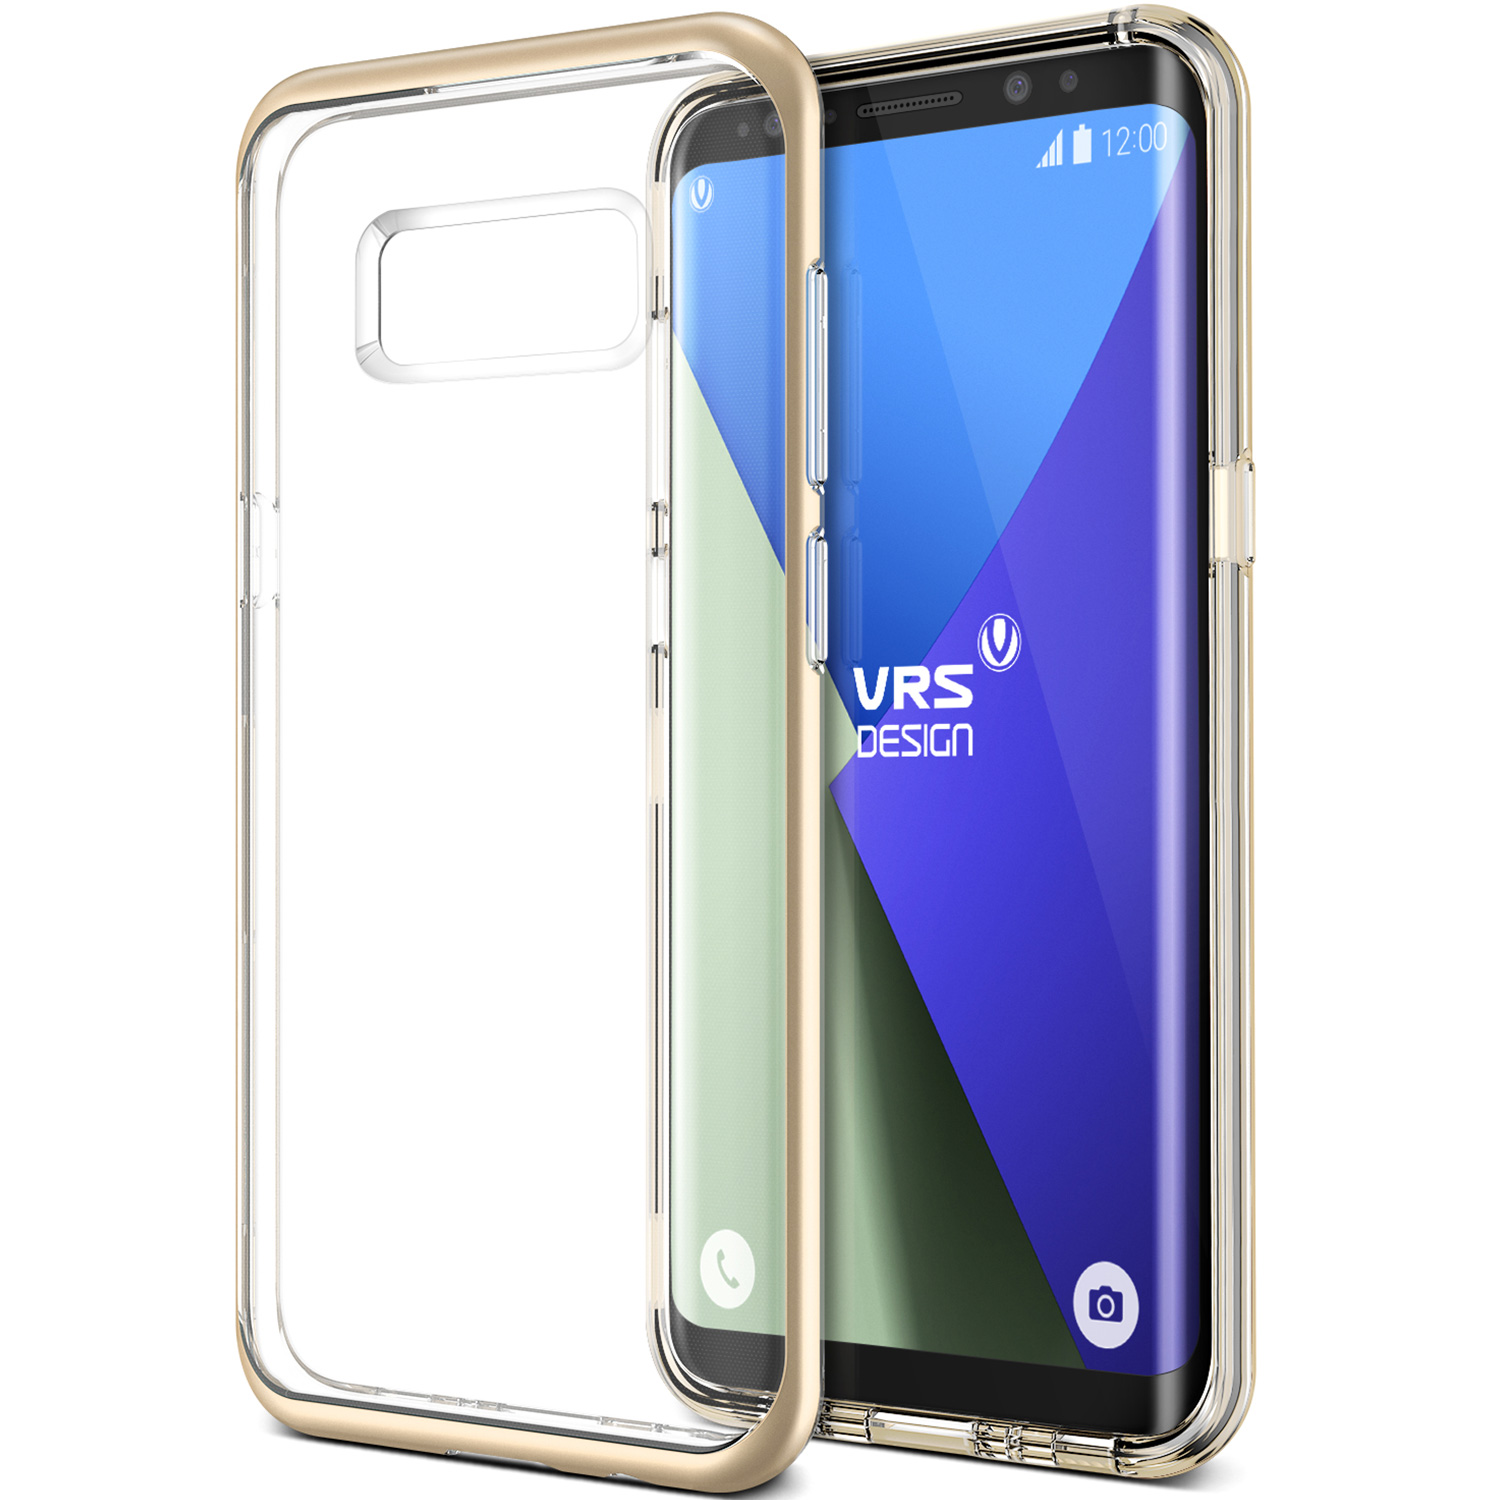 Samsung Galaxy S8 Case Cover | Clear TPU with Rugged Protection | VRS Design Crystal Bumper for Samsung Galaxy S8